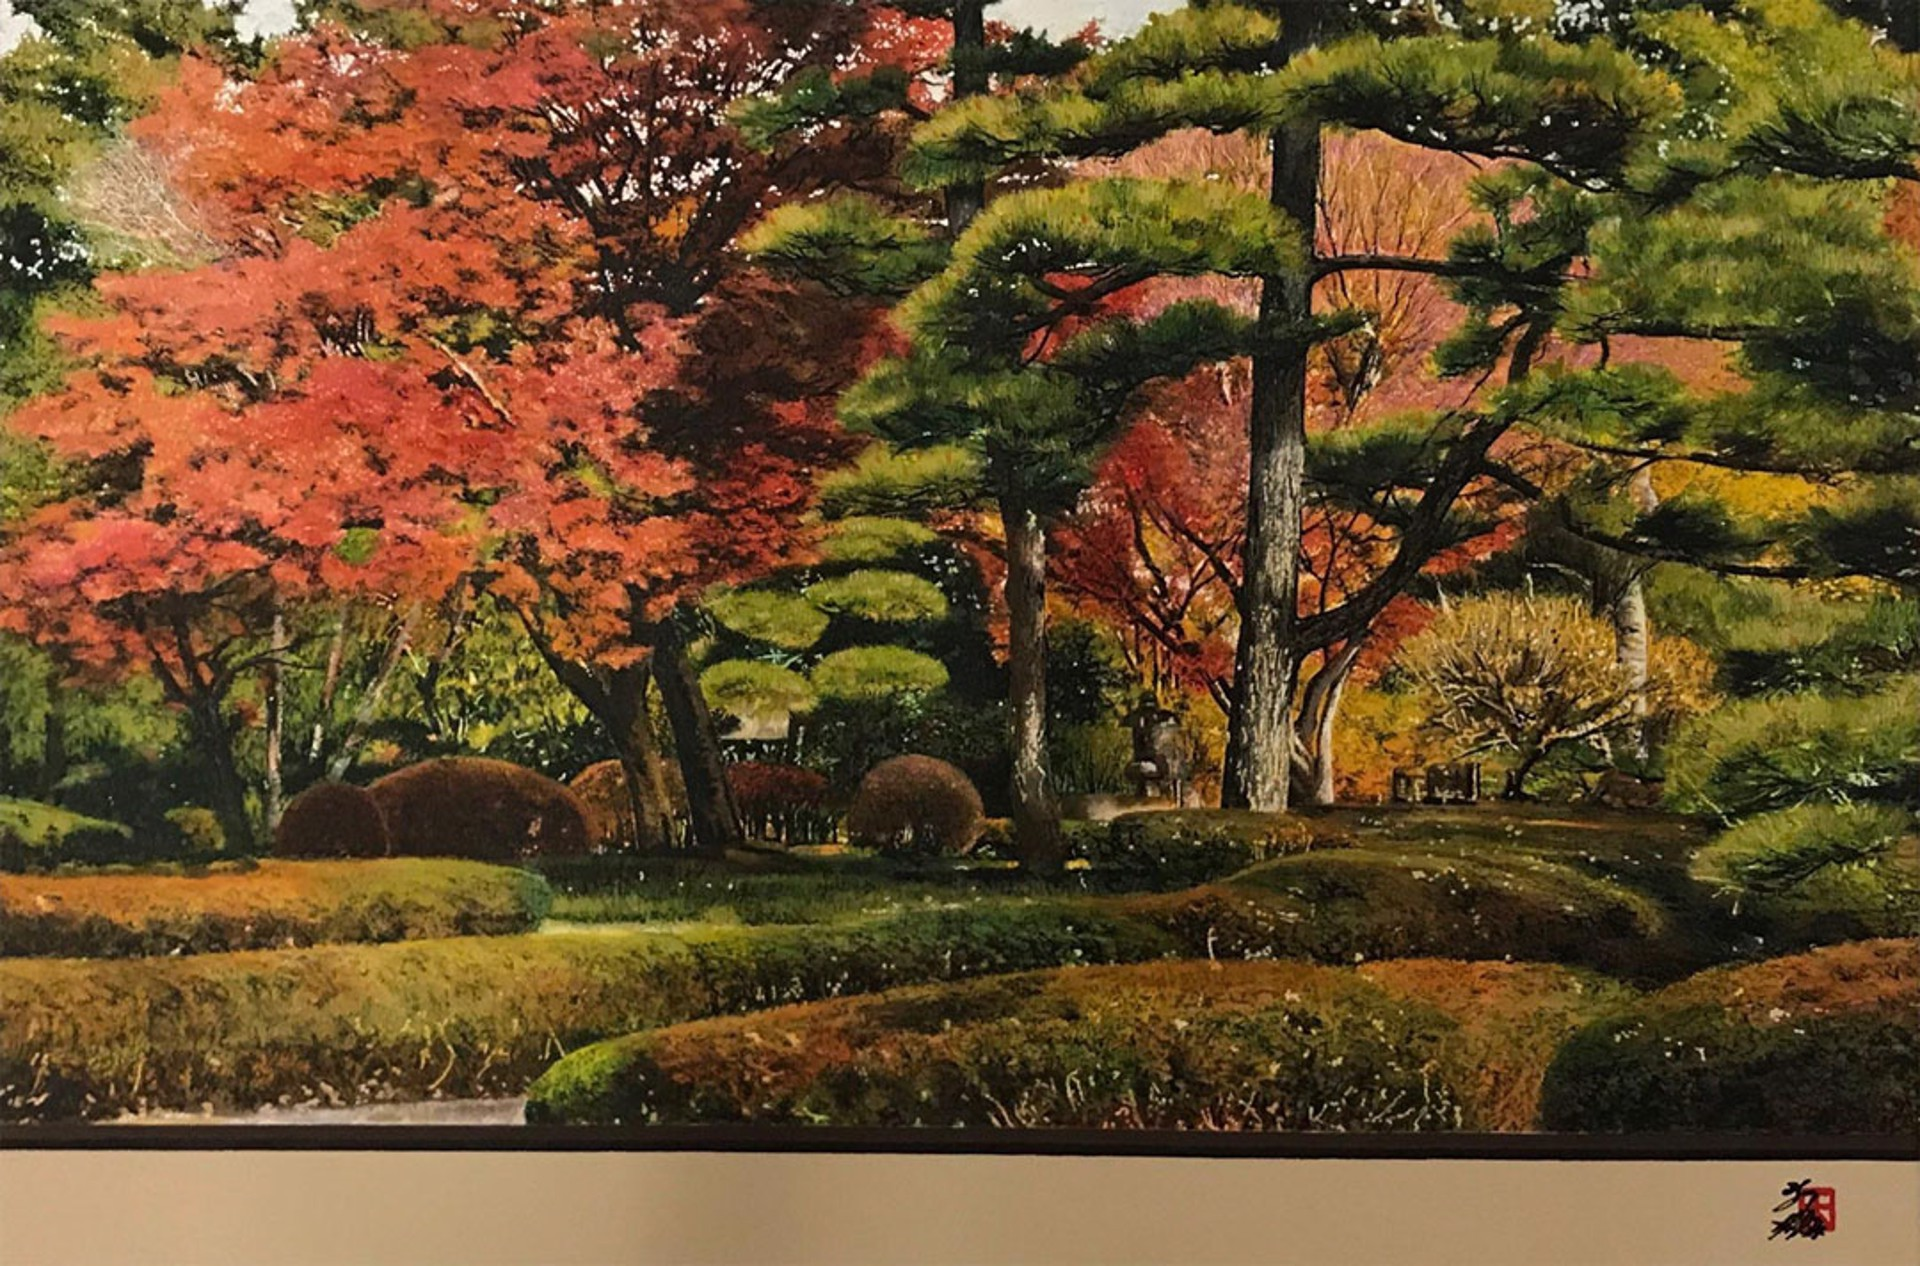 East Gardens Of The Imperial by Hisashi Otsuka